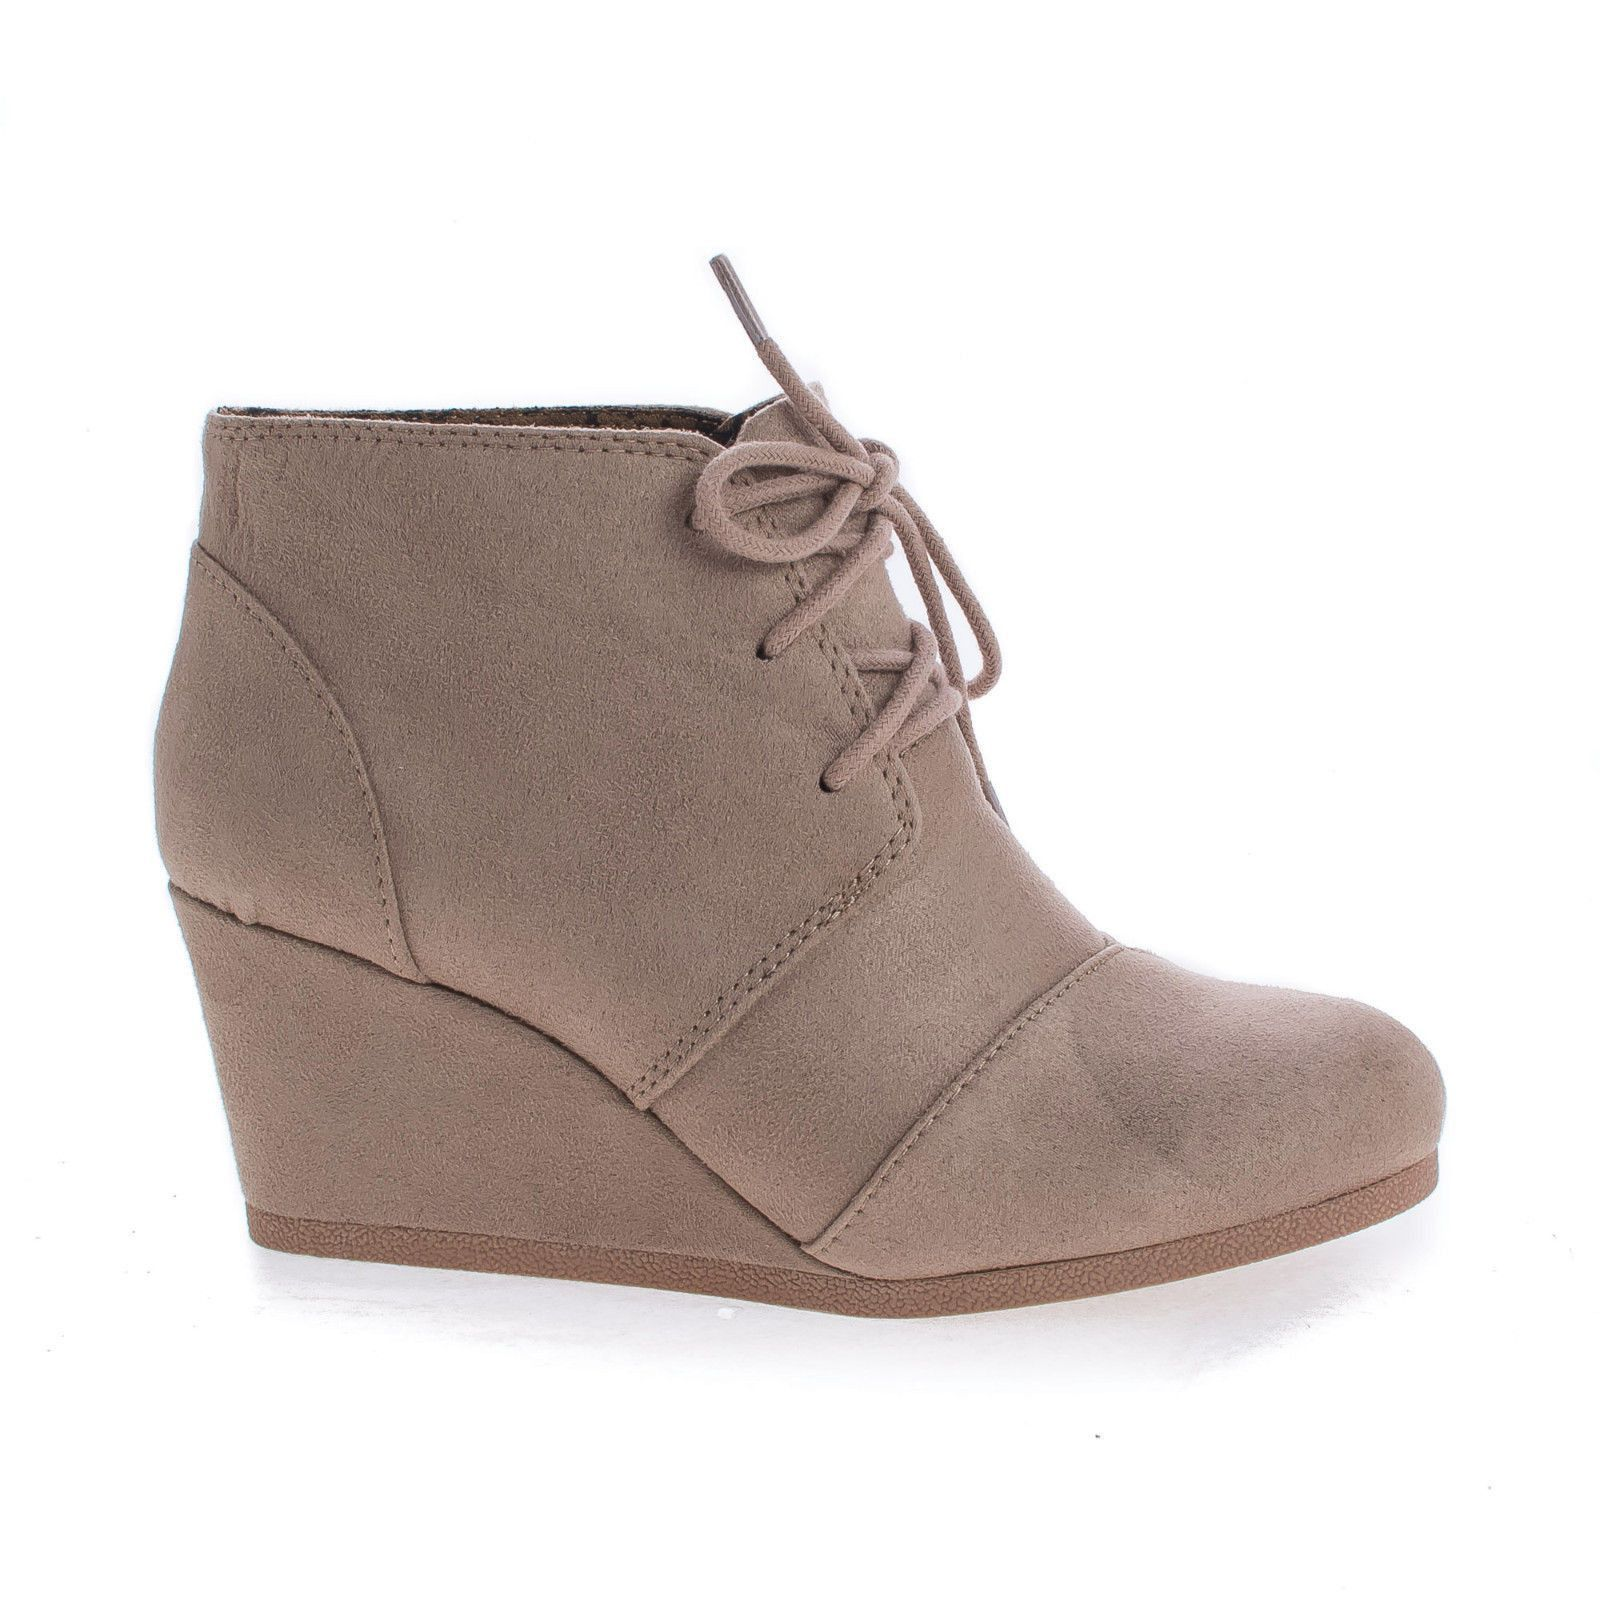 Women's Lace Up Oxford Wedge Ankle Bootie